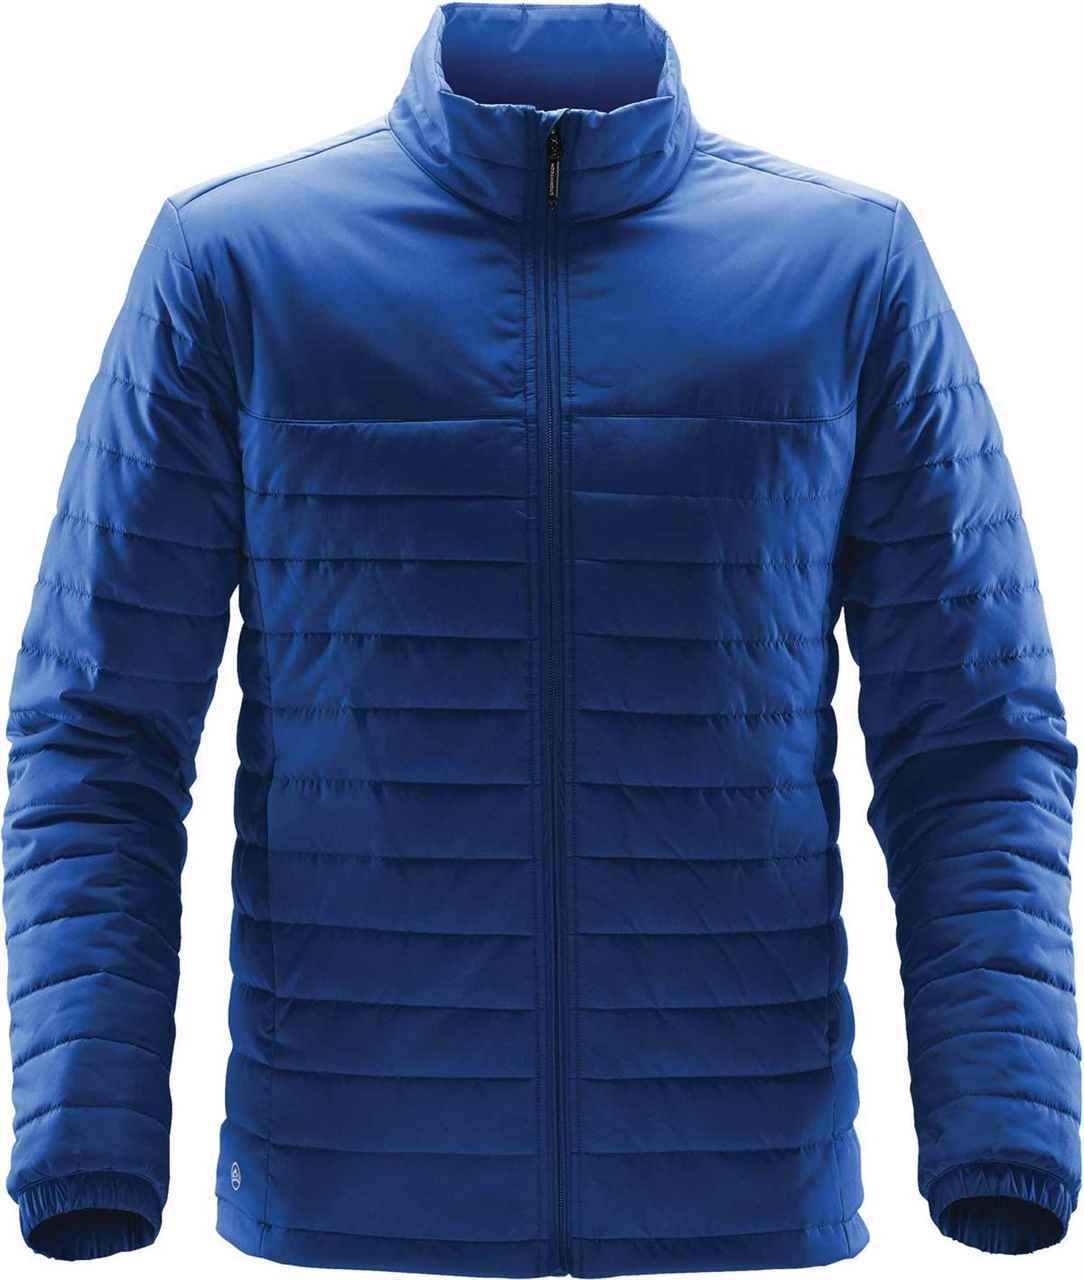 Picture of Stormtech Men's Nautilus Quilted Jacket